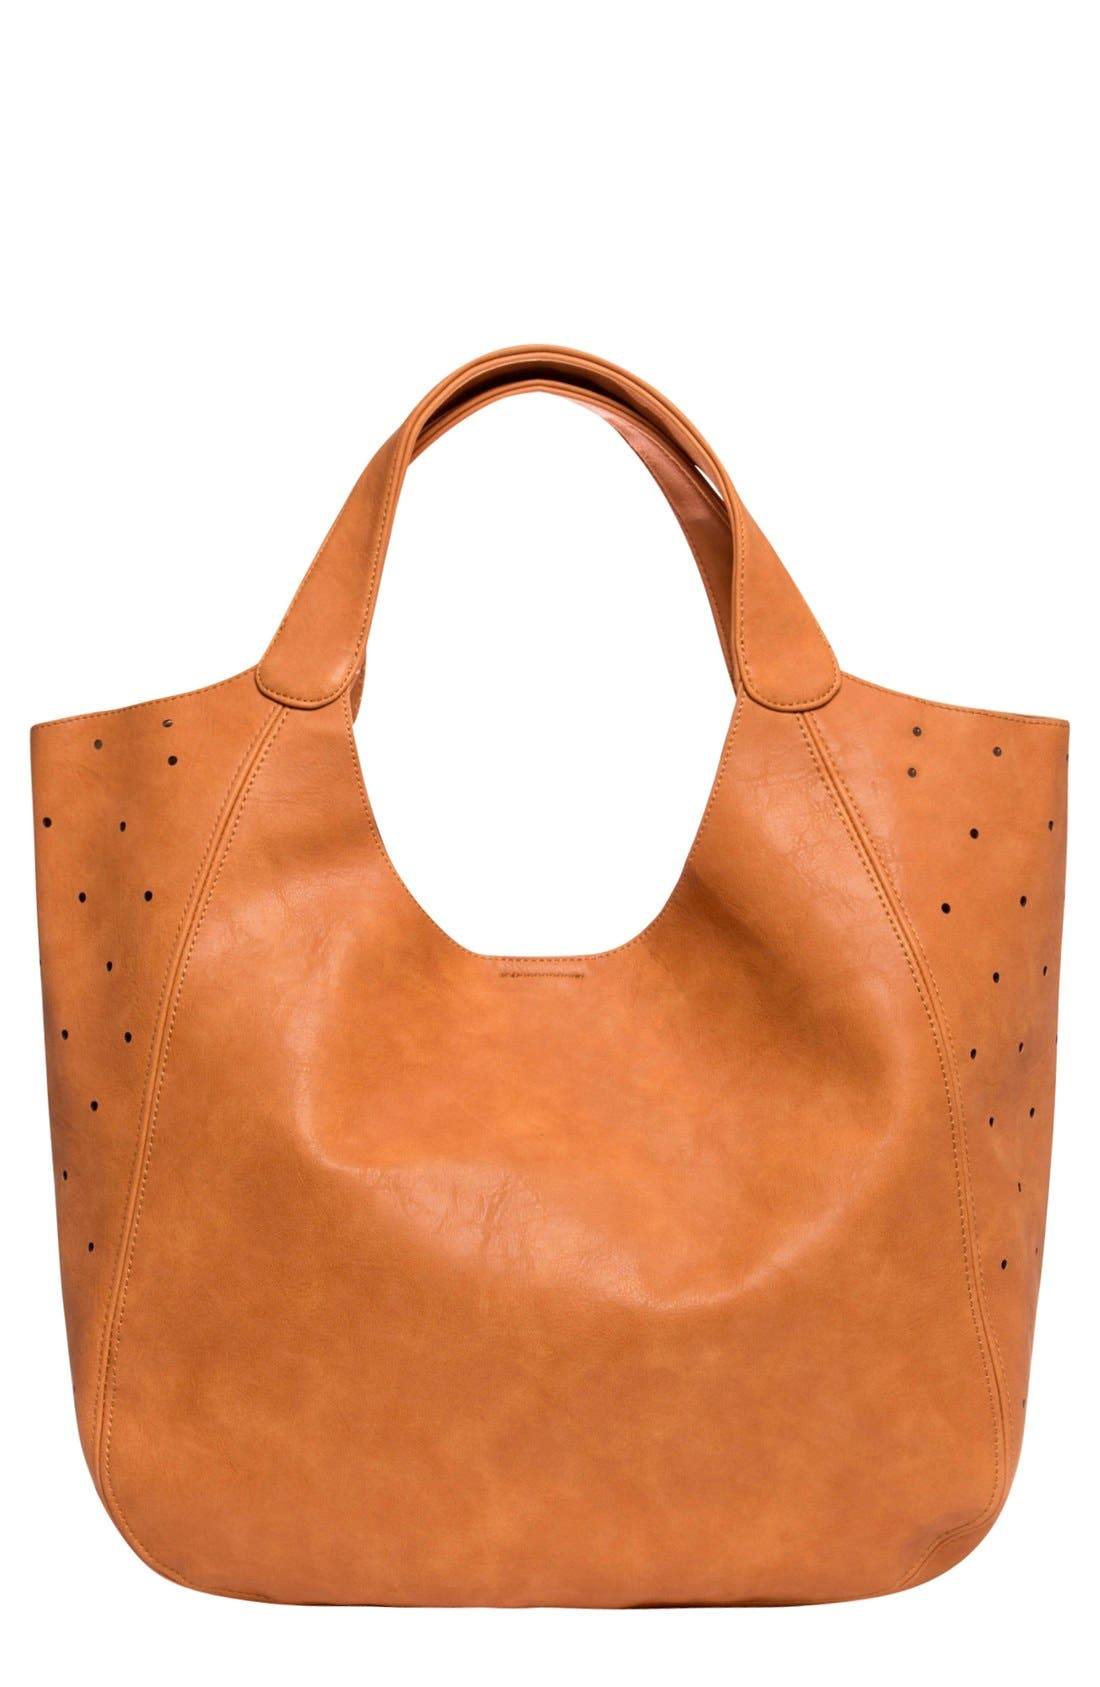 Urban Originals 'Masterpiece' Perforated Vegan Leather Tote